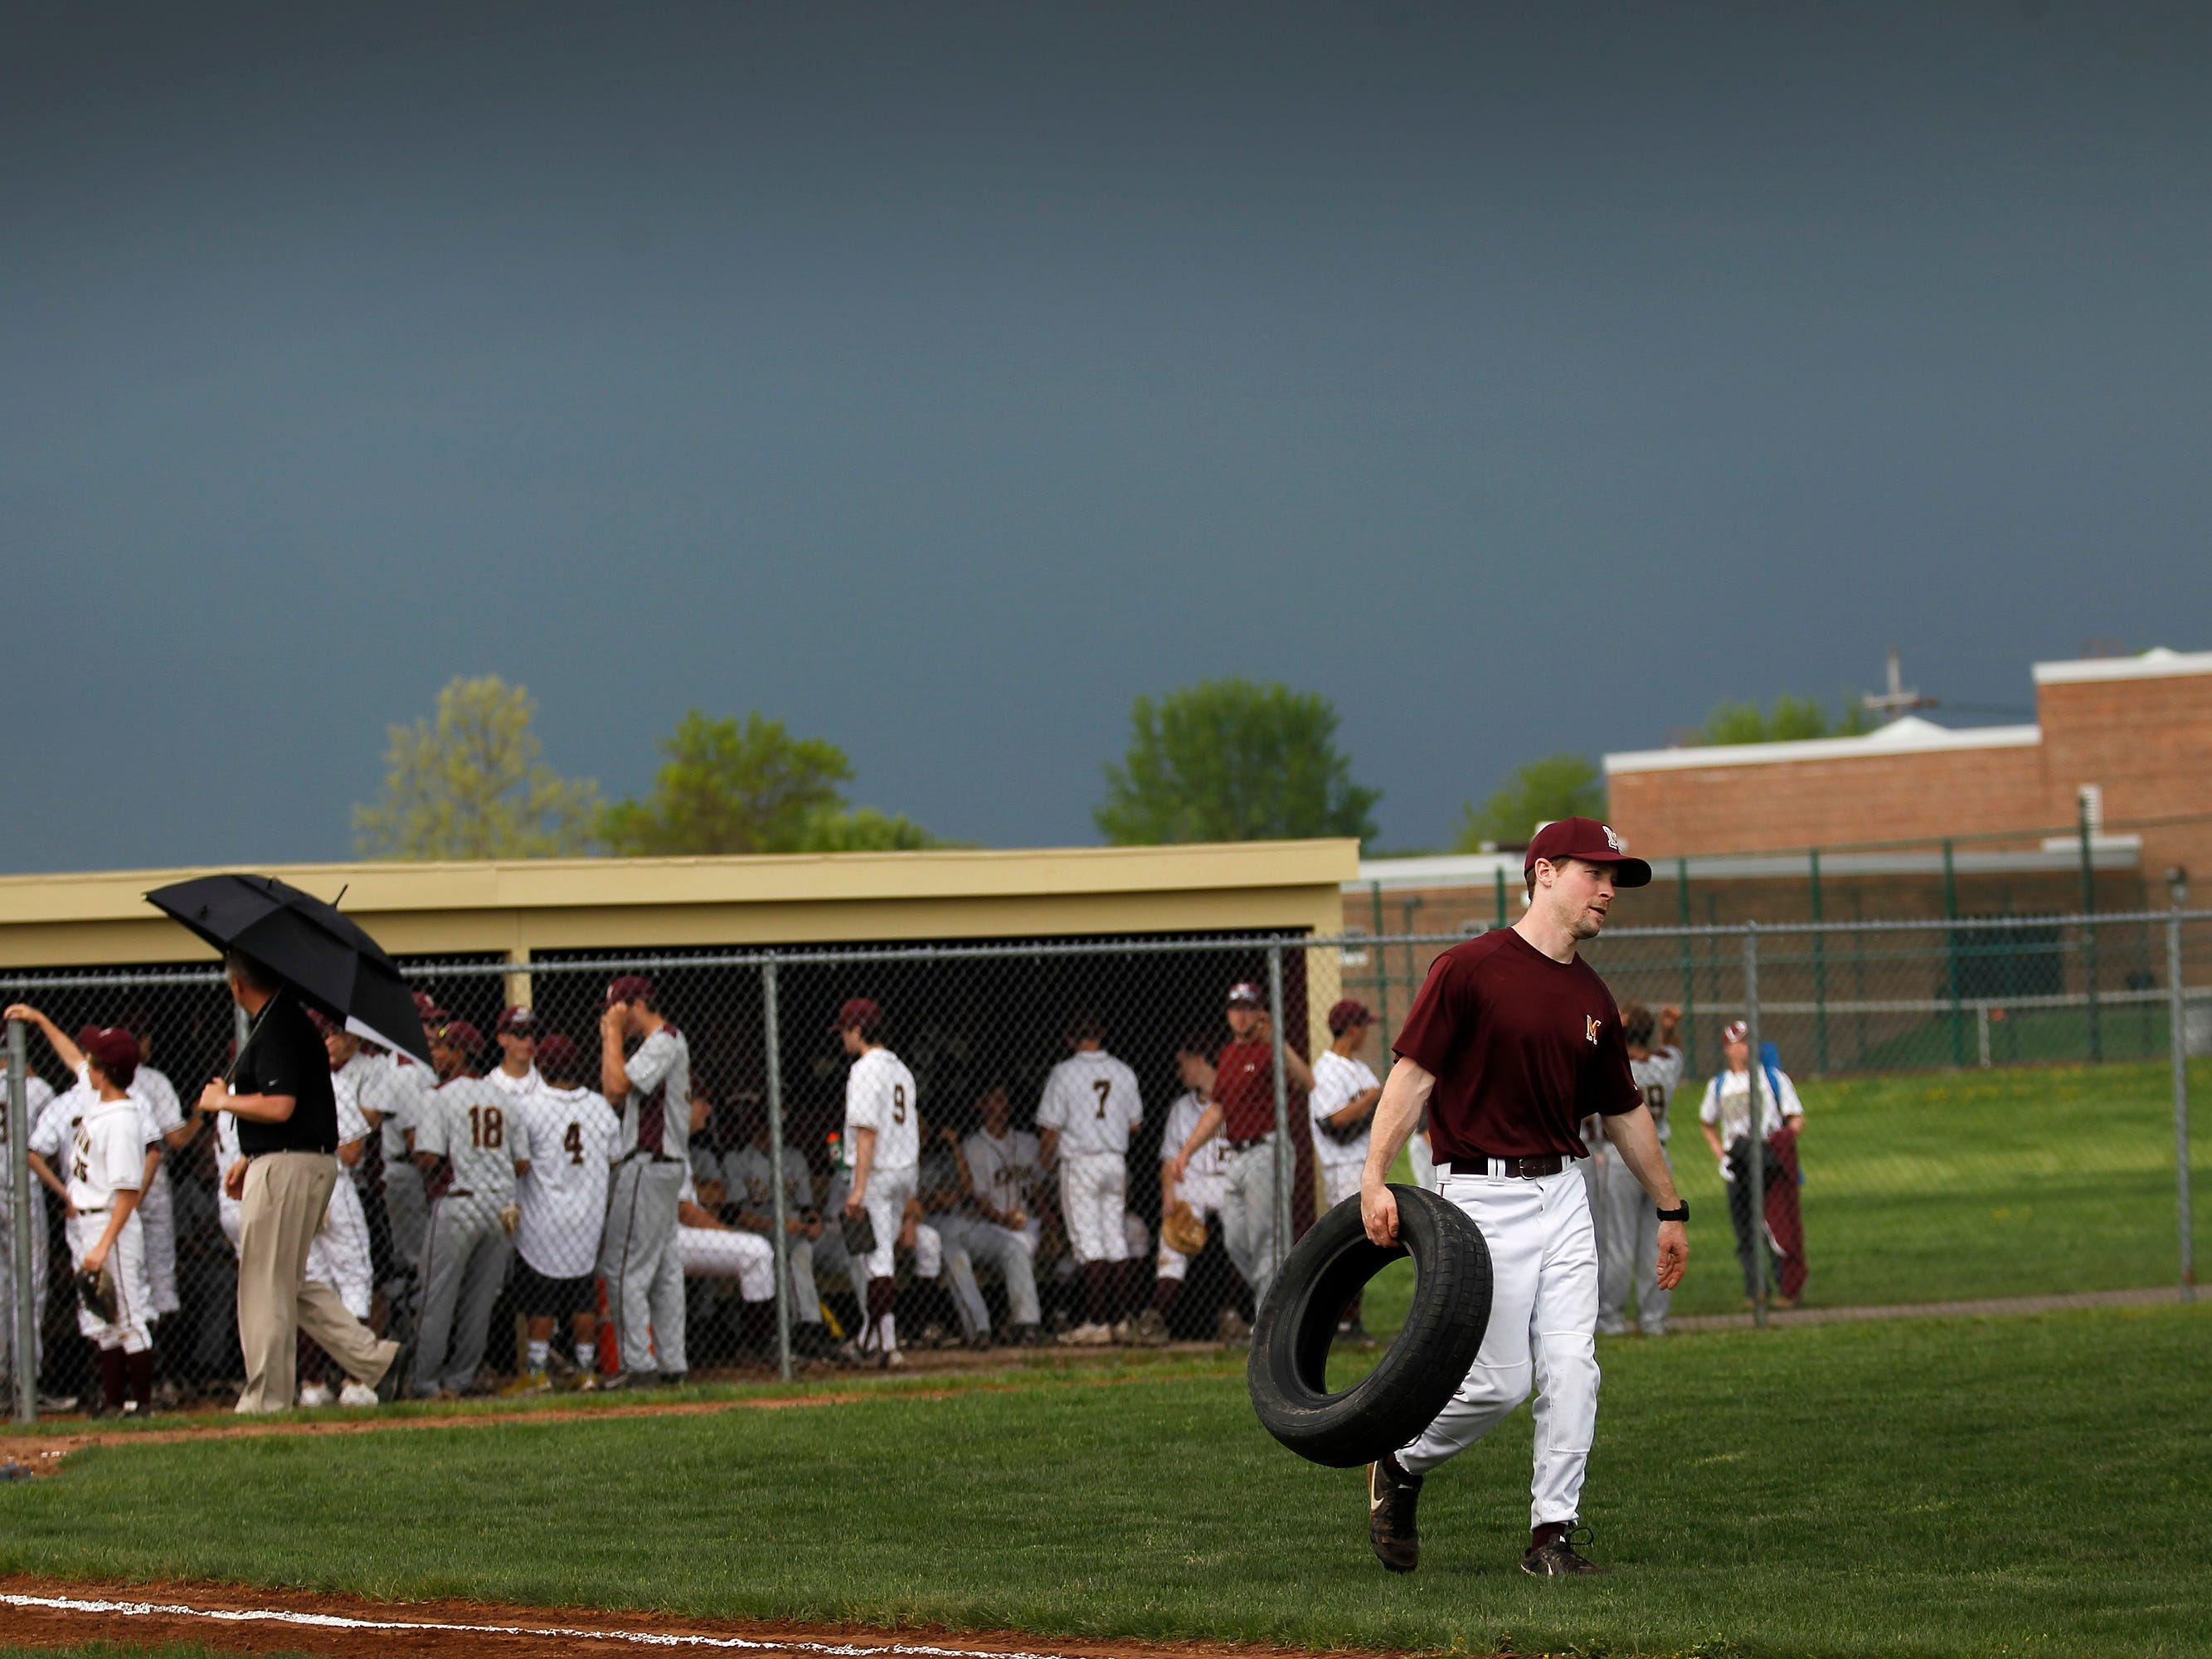 Members of the Pittsford Mendon baseball team start to cover home plate and the bases as the skies darken around them. The game was called after a thirty minute storm delay.